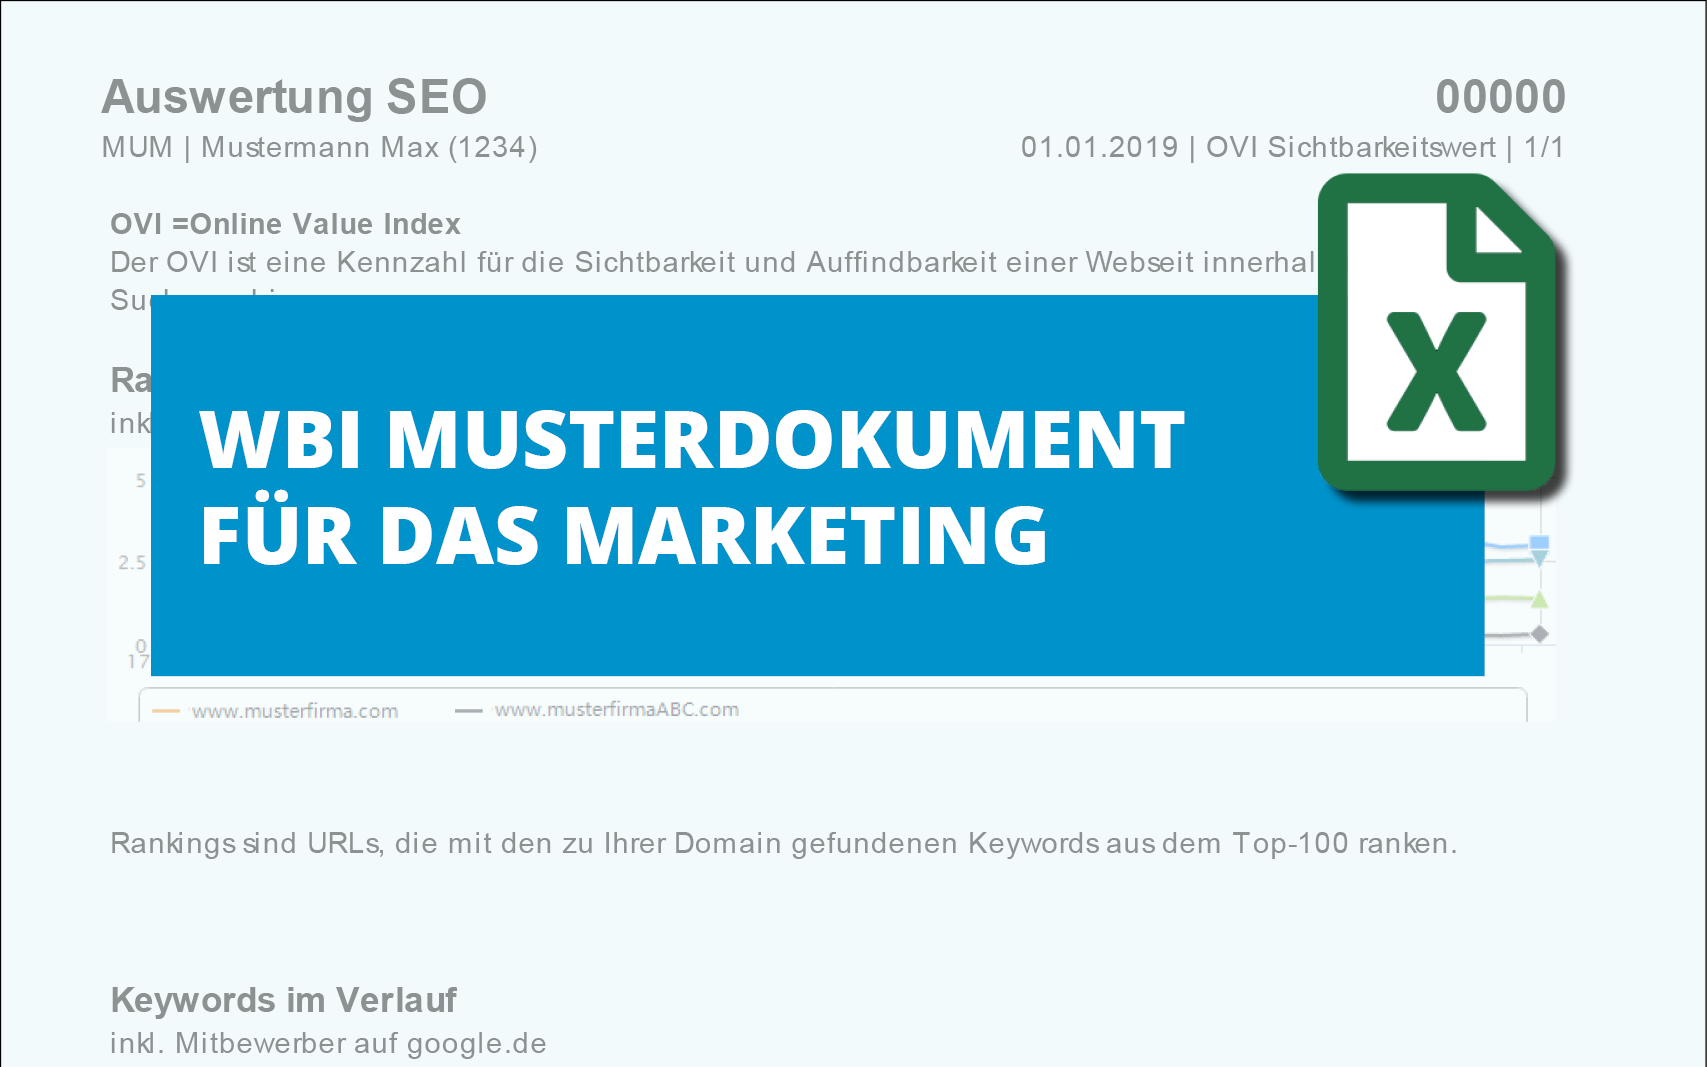 auswertung-seo